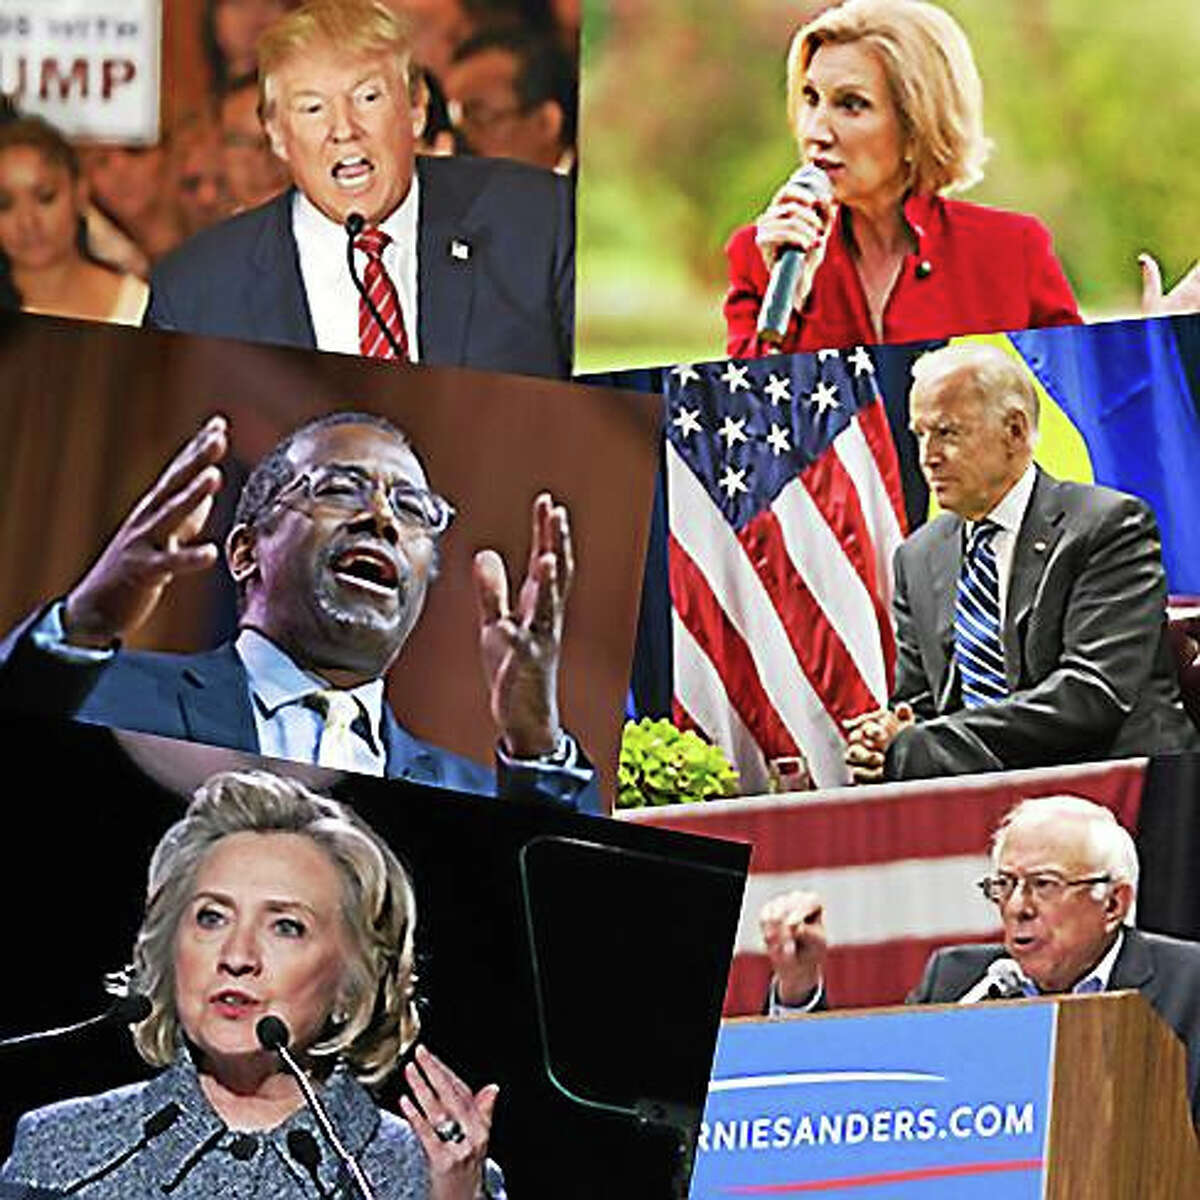 Presidential candidates for 2016